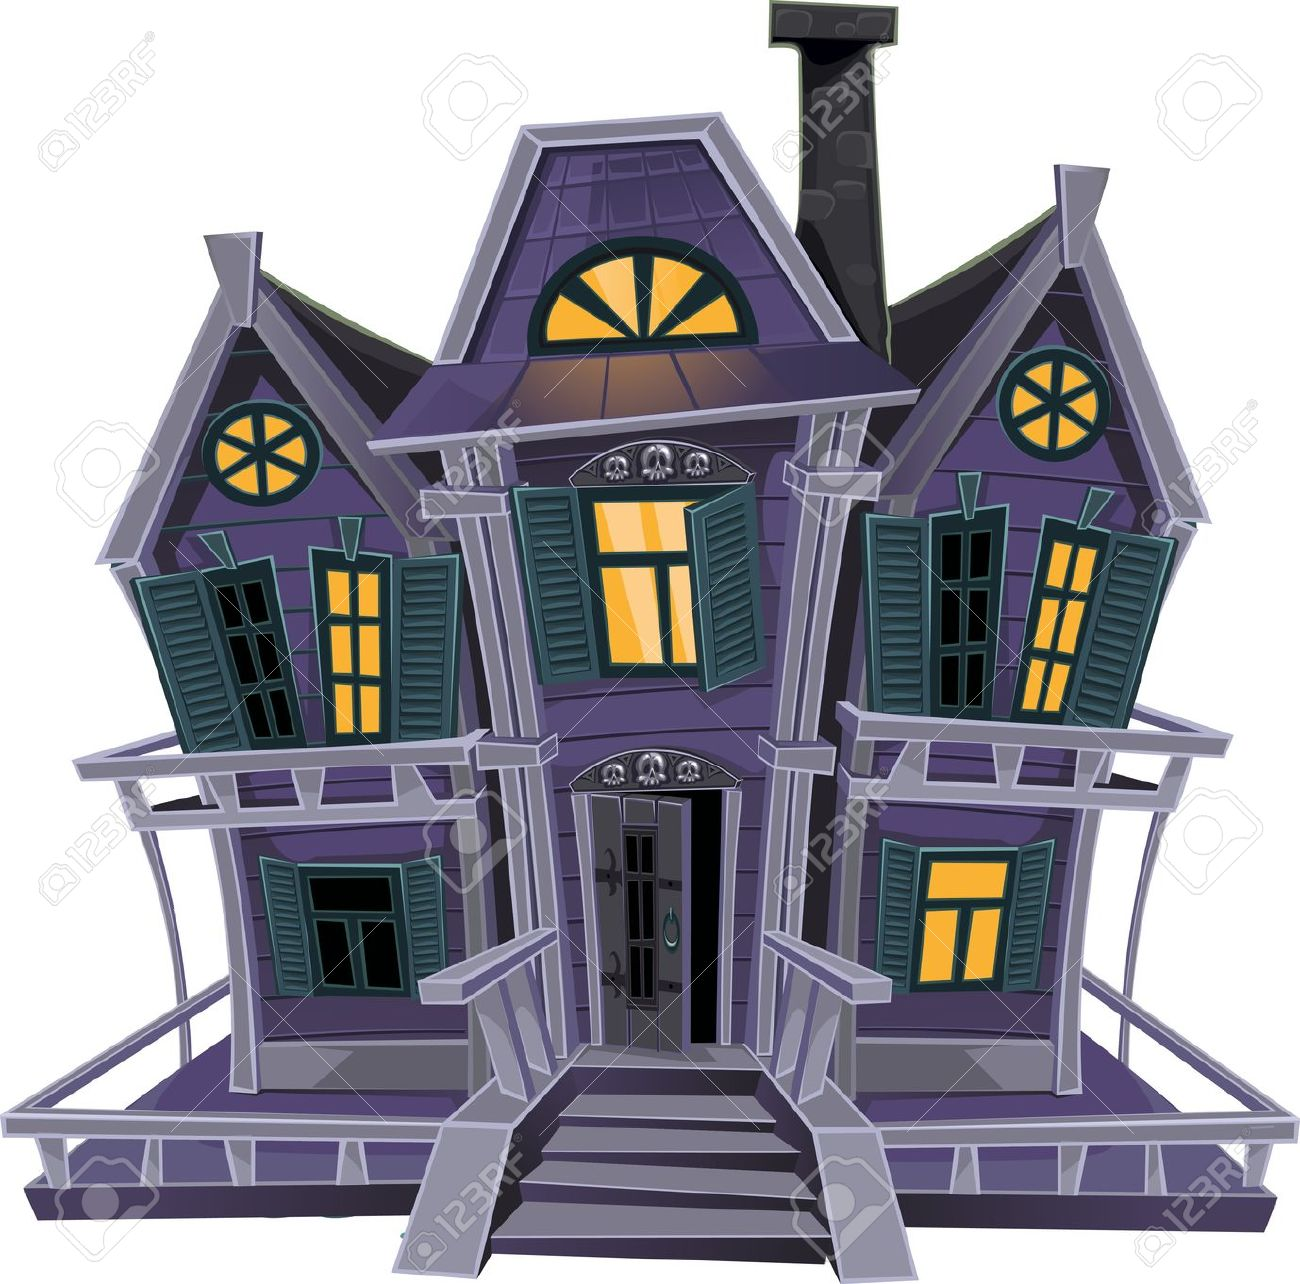 Images of witches house clipart.